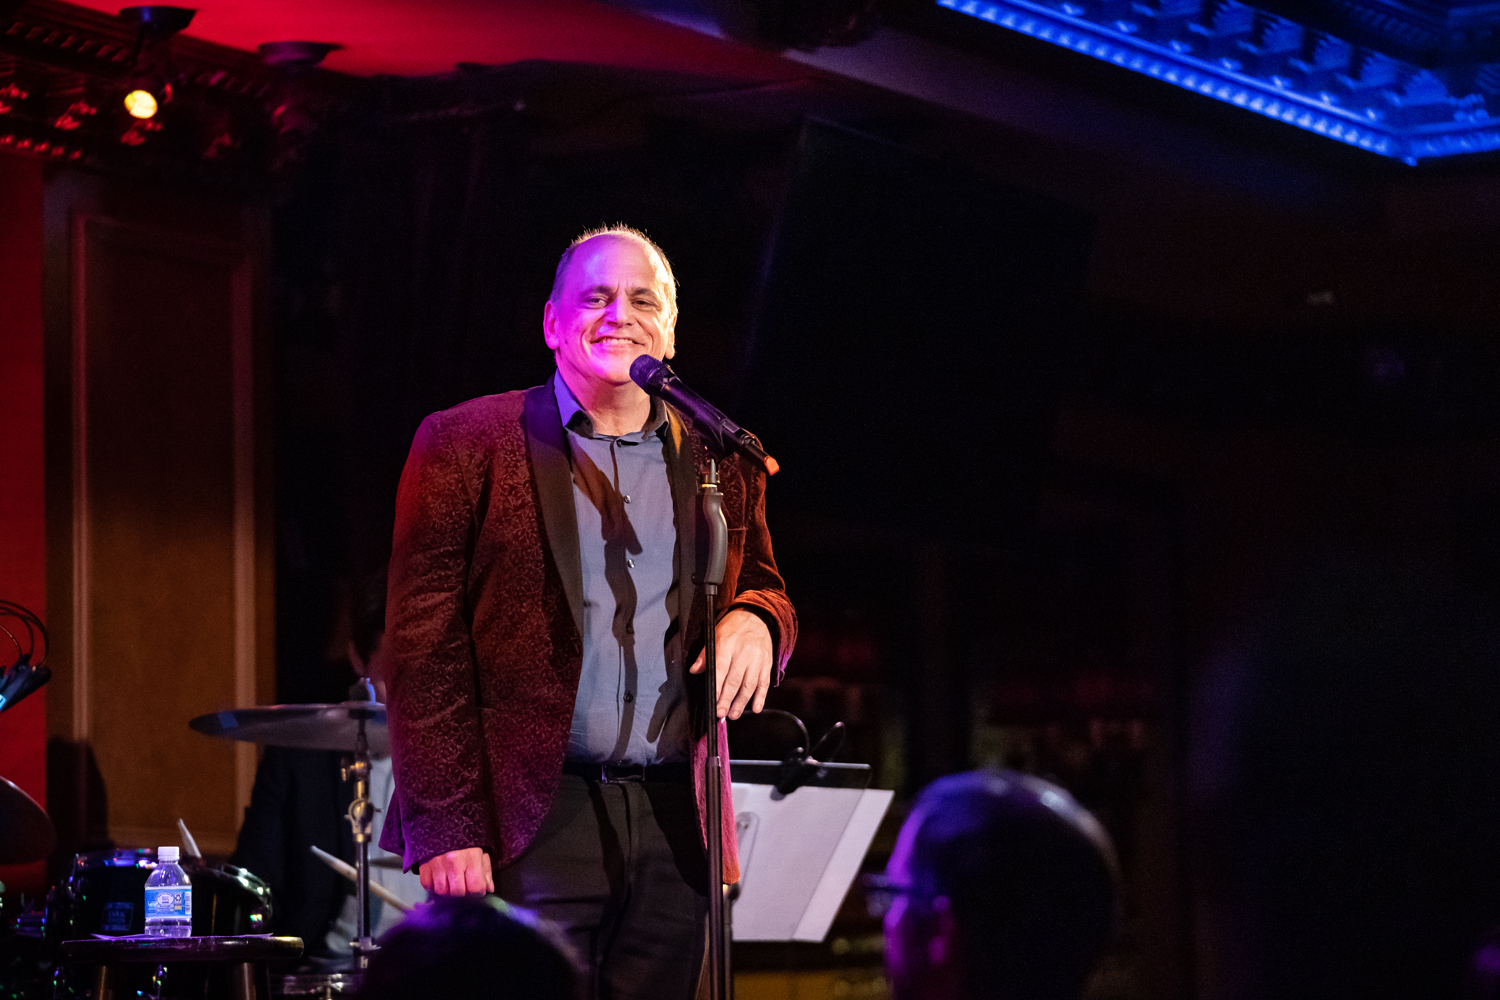 PHOTO FLASH: Broadwayworld Recaps John Minnock's 54 Below Performance